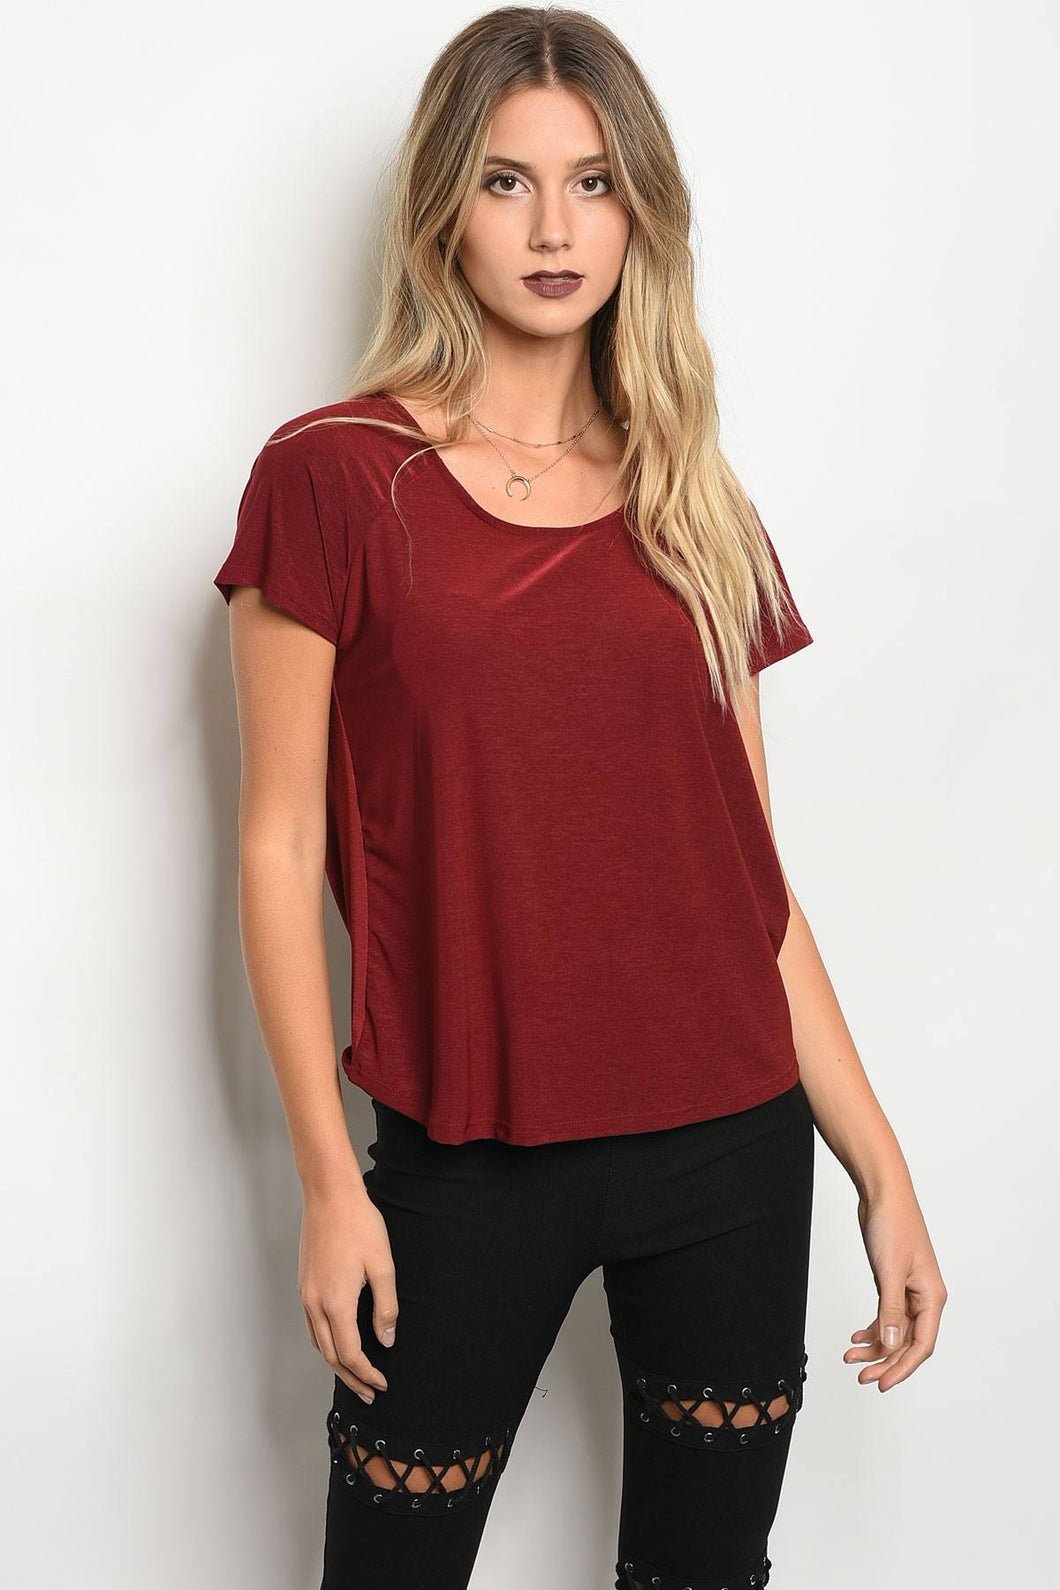 Ladies fashion short sleeve jersey relaxed fit top with a scoop neckline